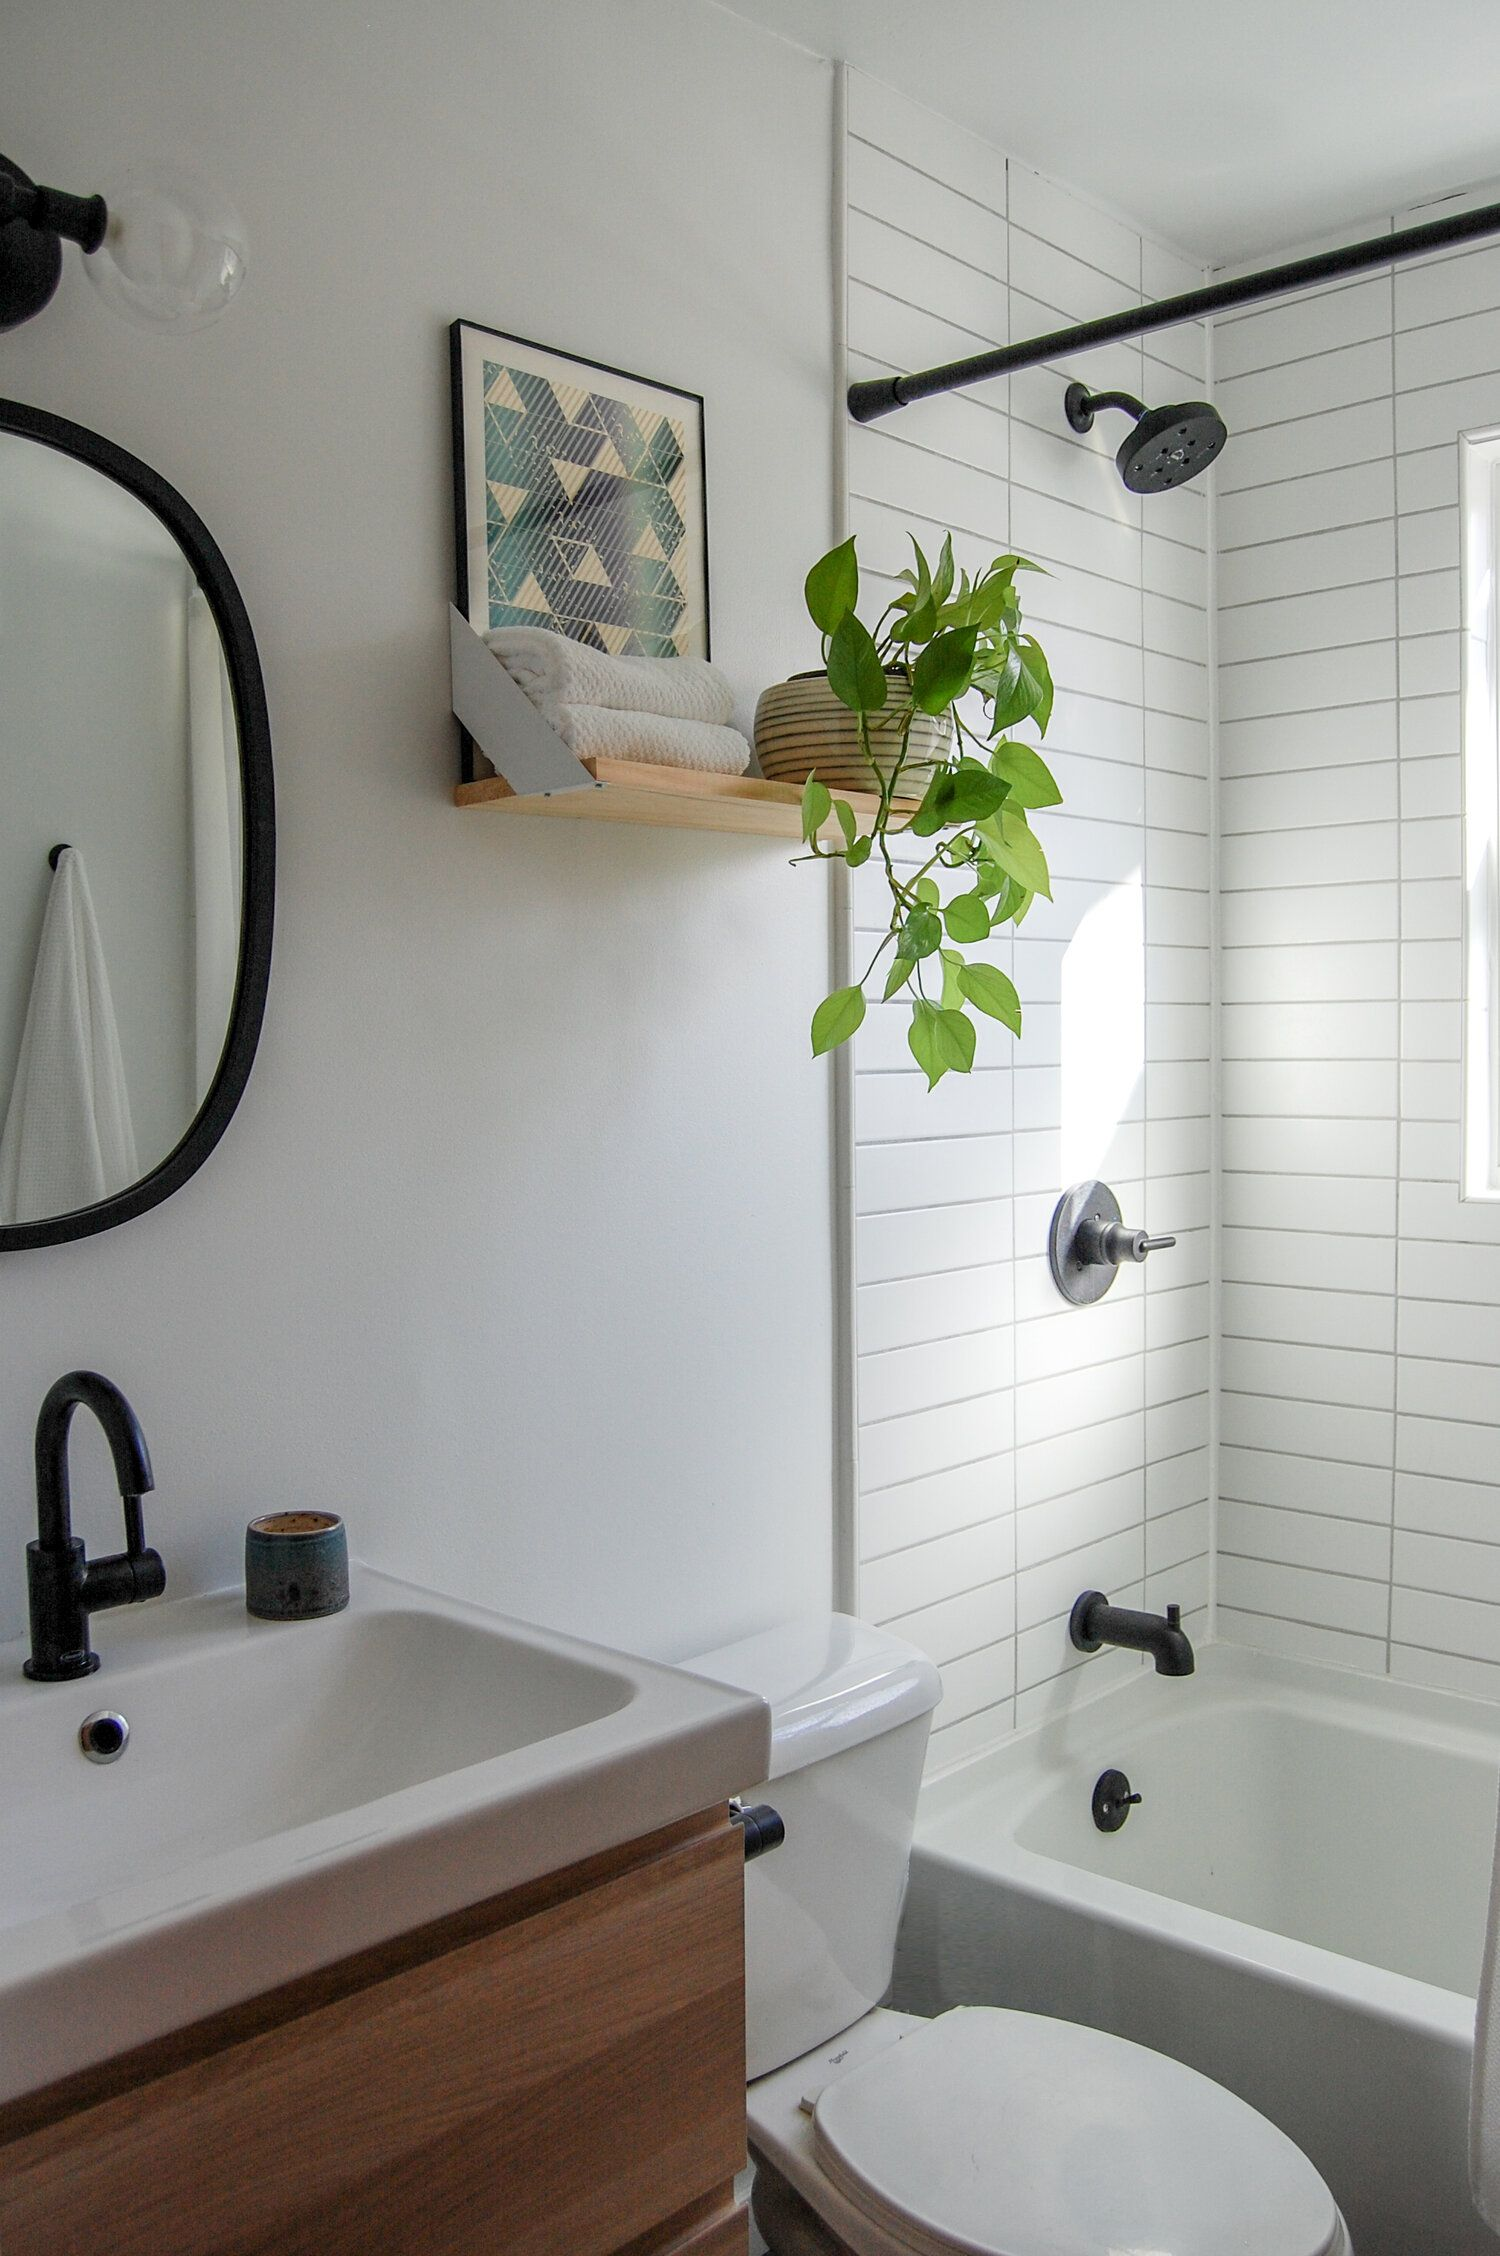 Home Makeover Product Links Meow Lady Home Remodeling Home Renovation Bathrooms Remodel